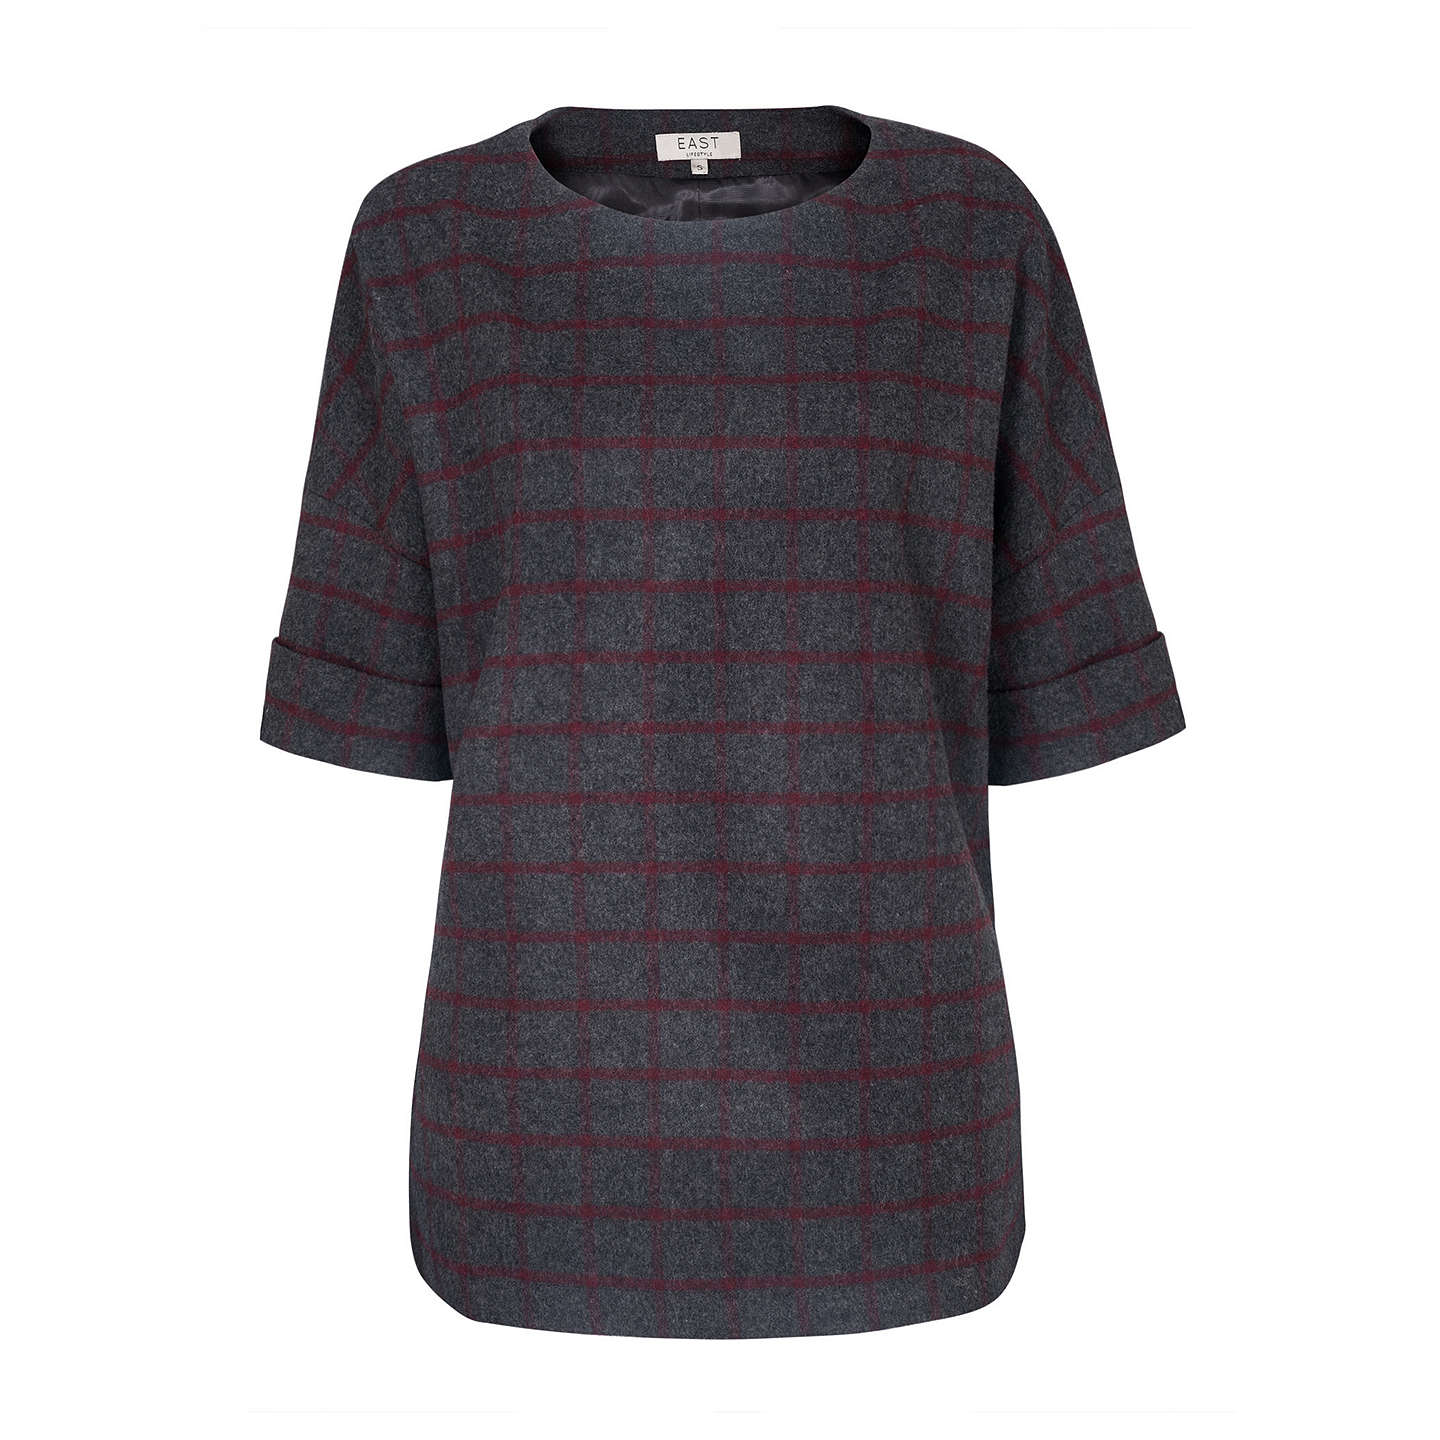 BuyEast Wool Mix Check Top, Grey, S Online at johnlewis.com